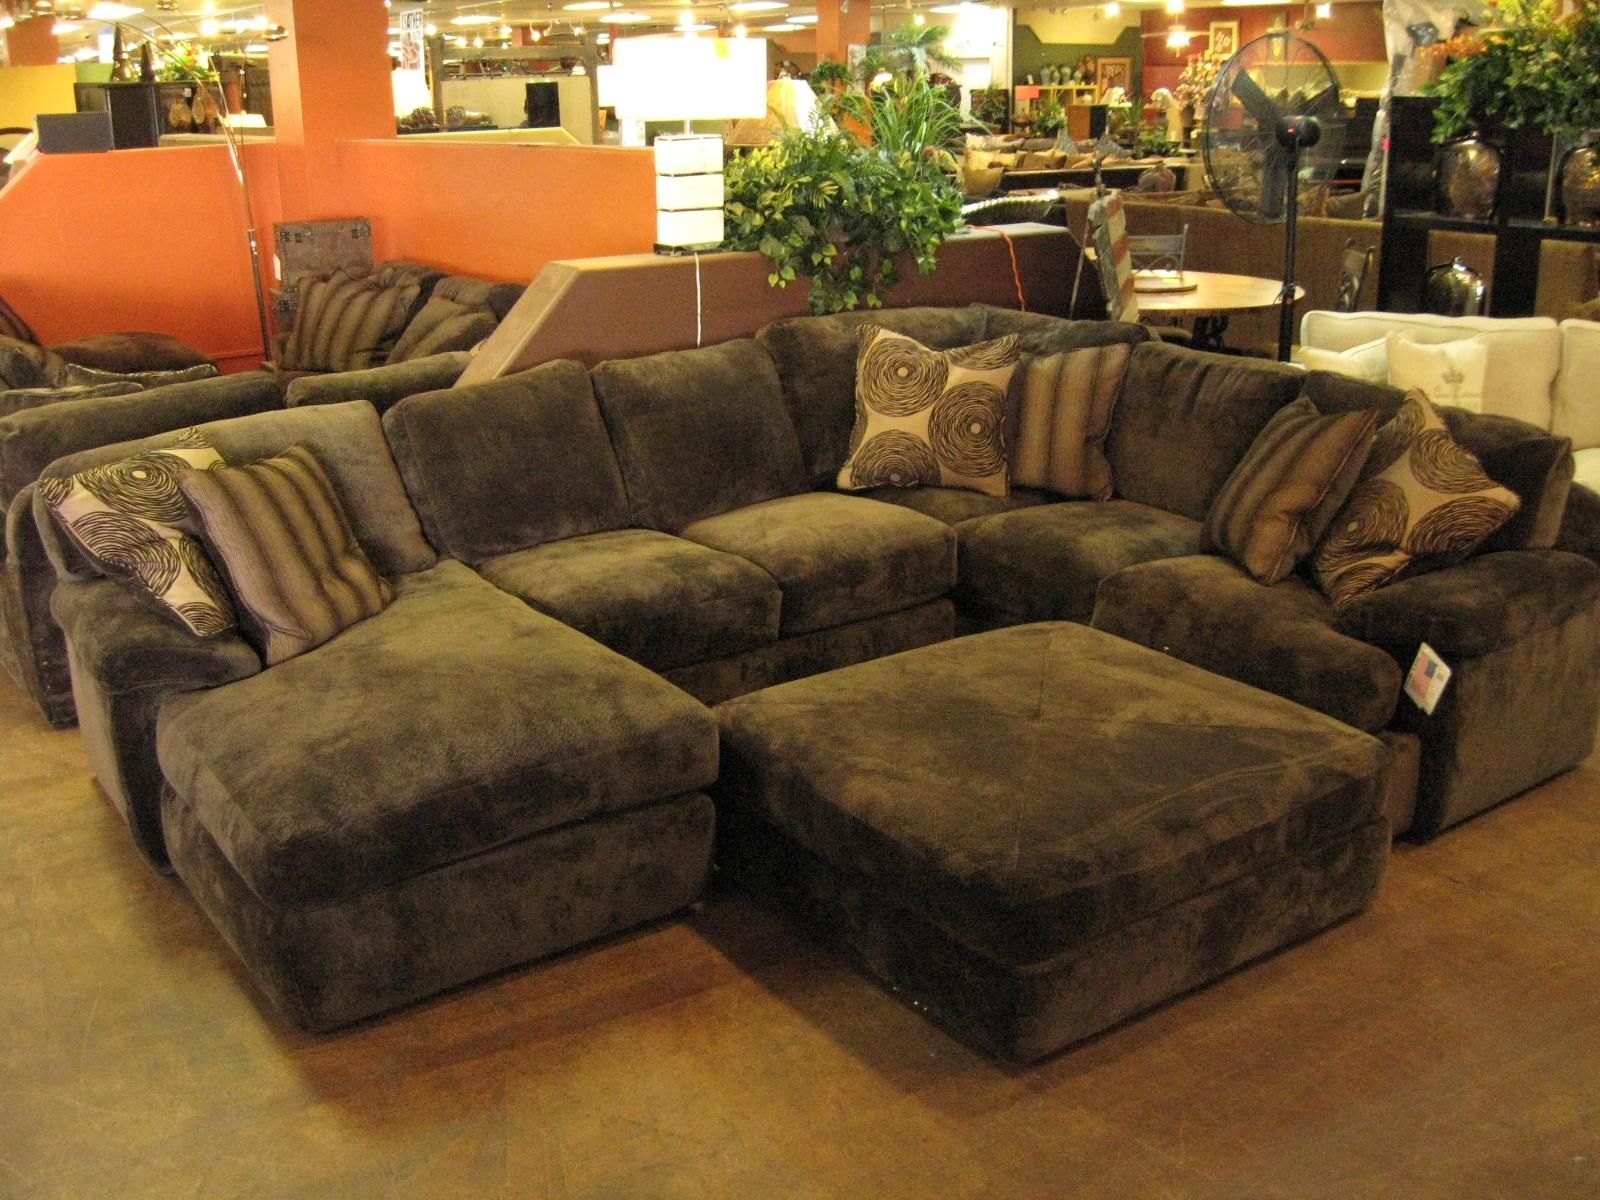 Sofas Center : Excellent Downectionalofa Images Concept Latest Intended For Down Feather Sectional Sofa (Image 15 of 15)